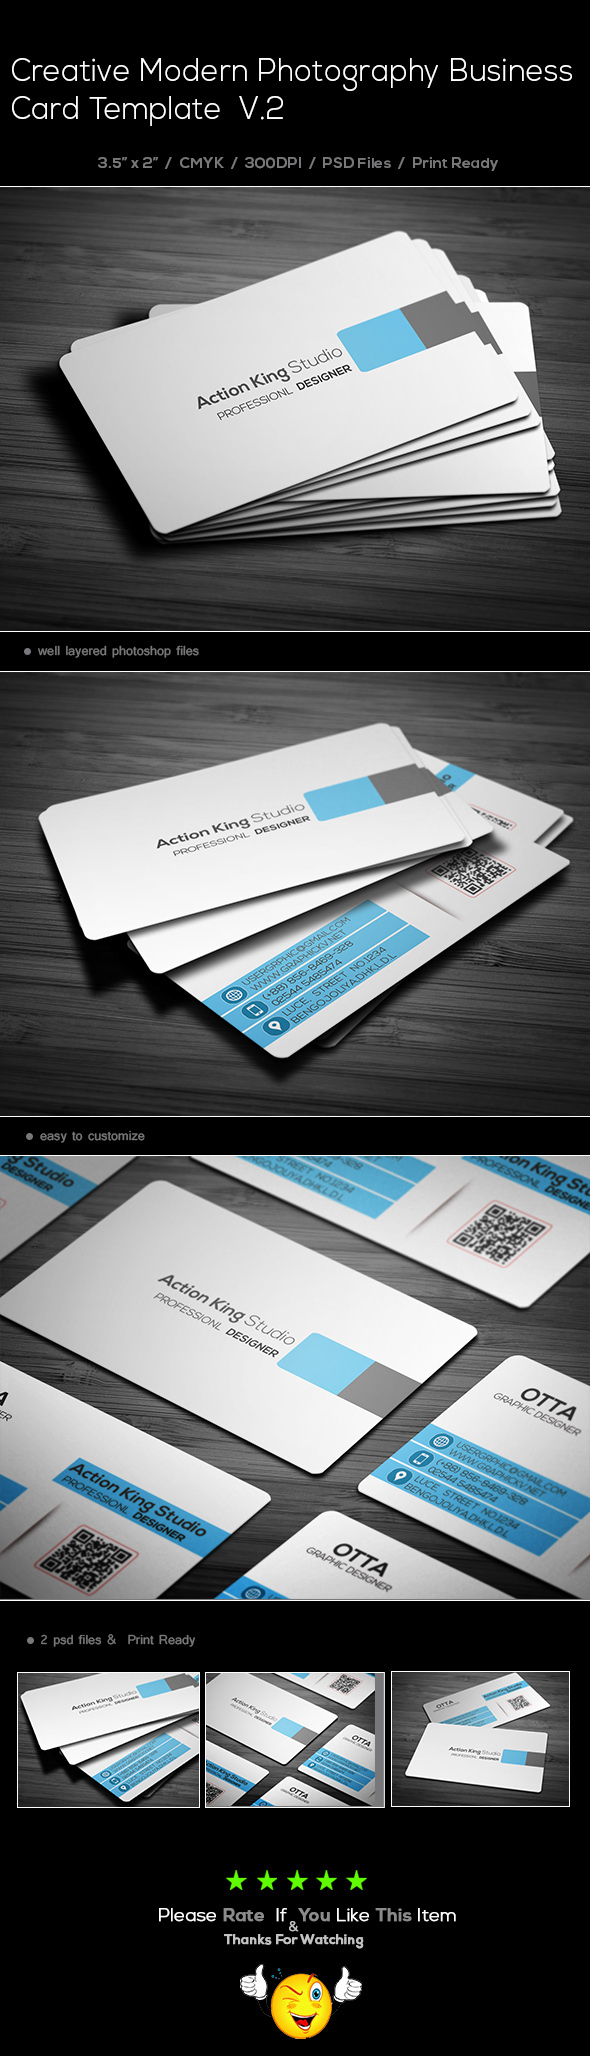 Creative modern corporate business card template v2 on behance reheart Gallery